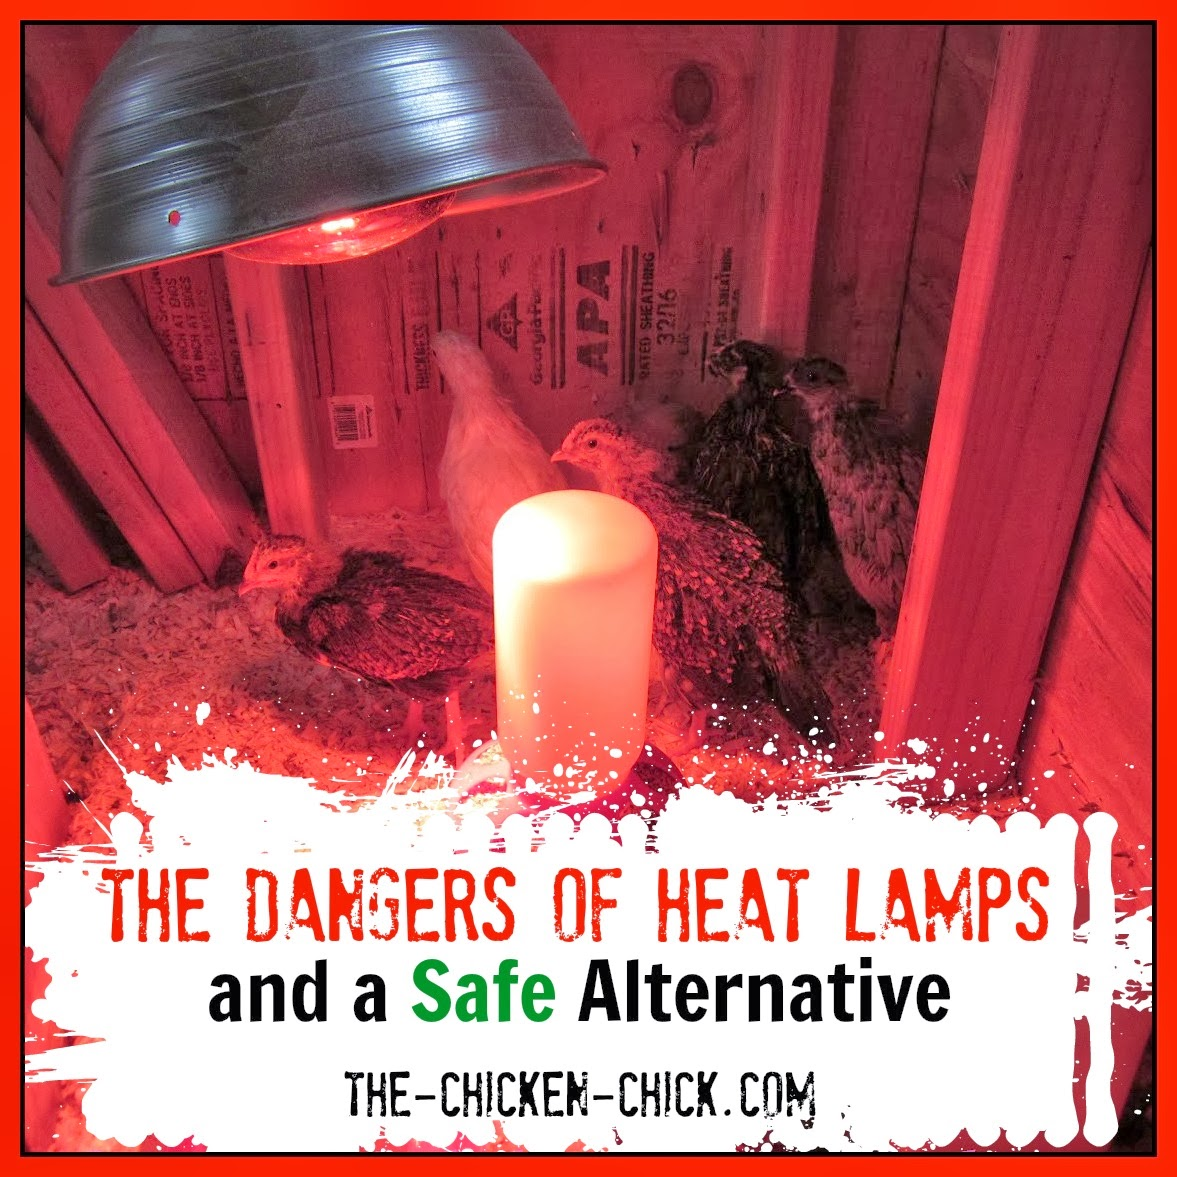 Traditional heat lamps are a fire hazard in chick brooders even when used conscientiously. The Brinsea EcoGlow Brooder is a safe alternative to dangerous heat lamps.